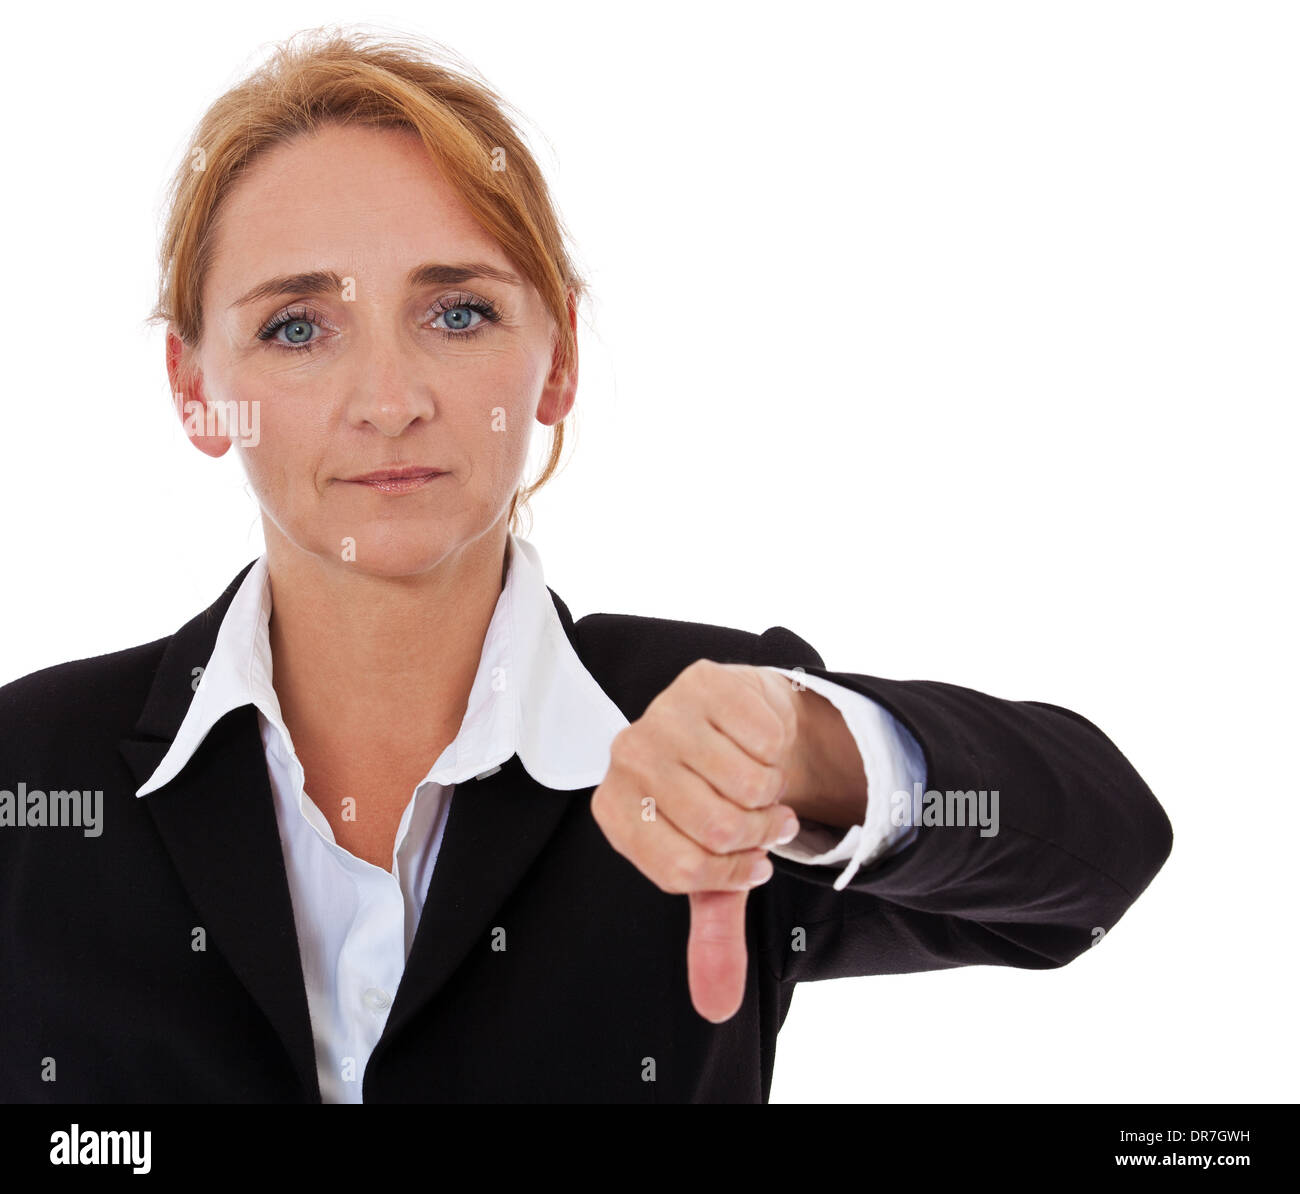 Businesswoman showing thumbs down. All on white background. - Stock Image